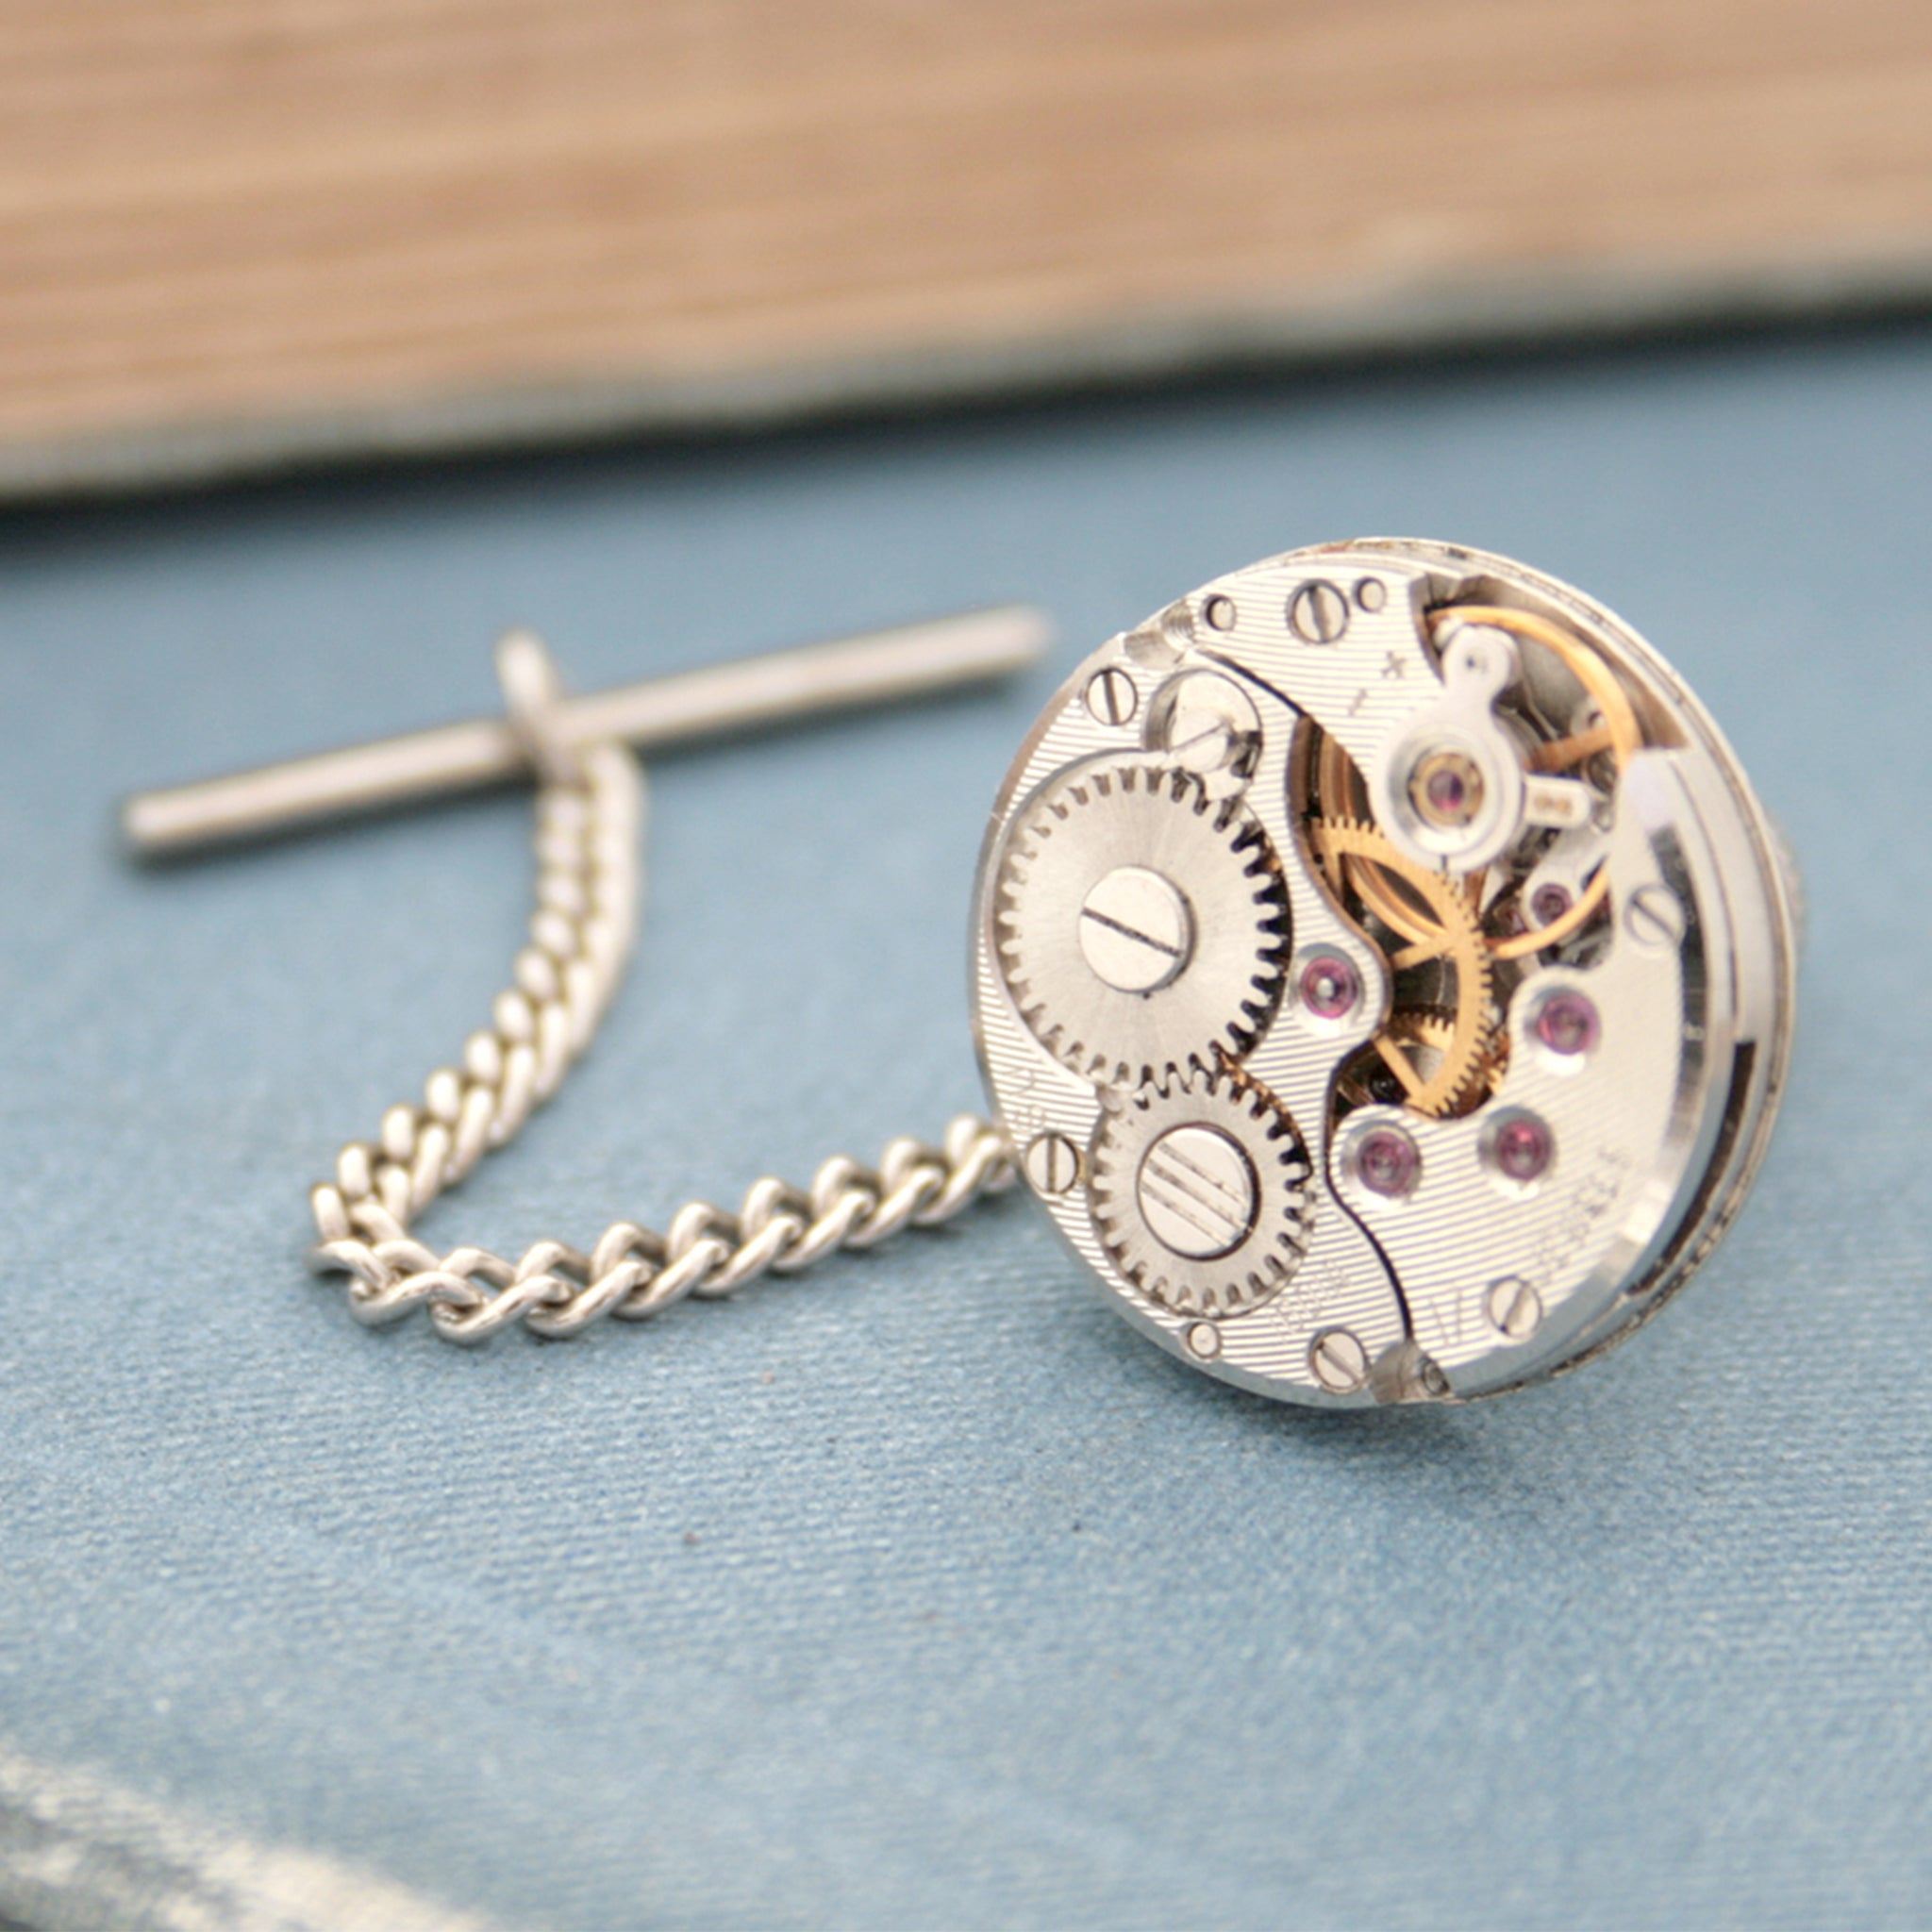 Tie tack with chain made of old watch movement